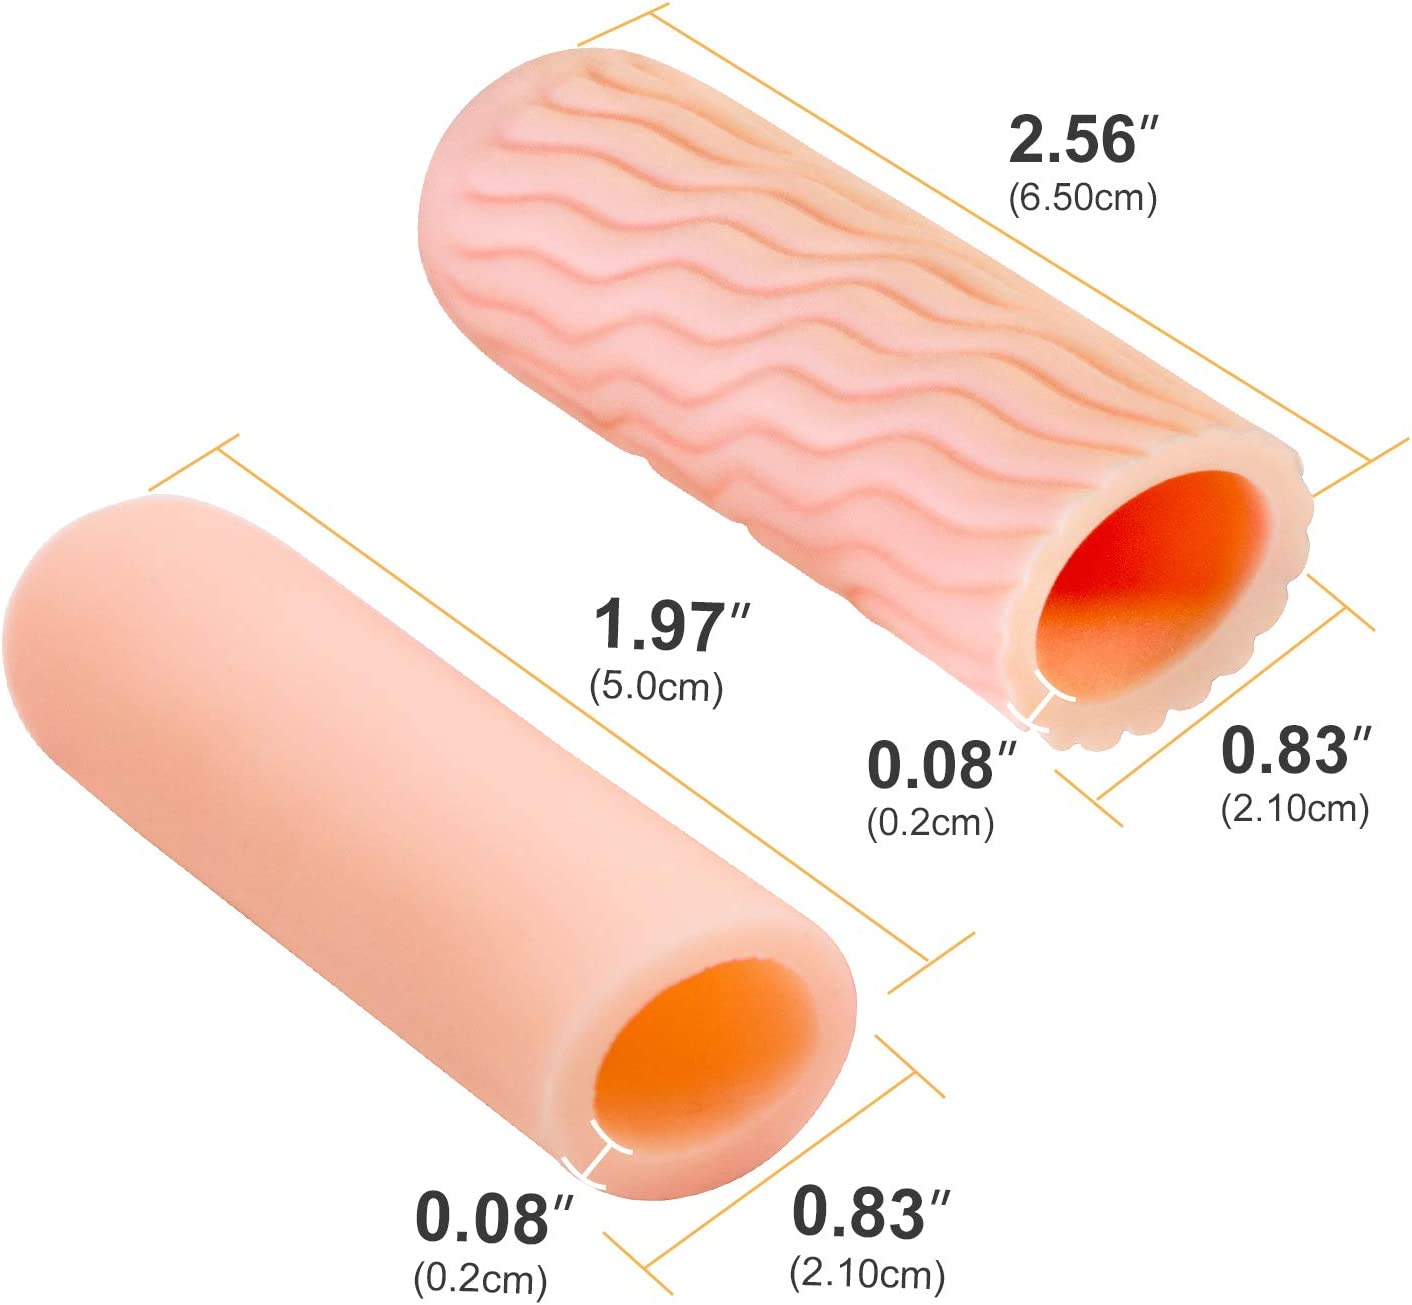 Sumifun Gel Finger Protector Cracked Finger Finger Cot for Protecting Fingers from Burns and cuts Finger Arthritis etc 5 Pairs Pain Relief from Trigger Finger Finger Sleeves with Wavy Outer